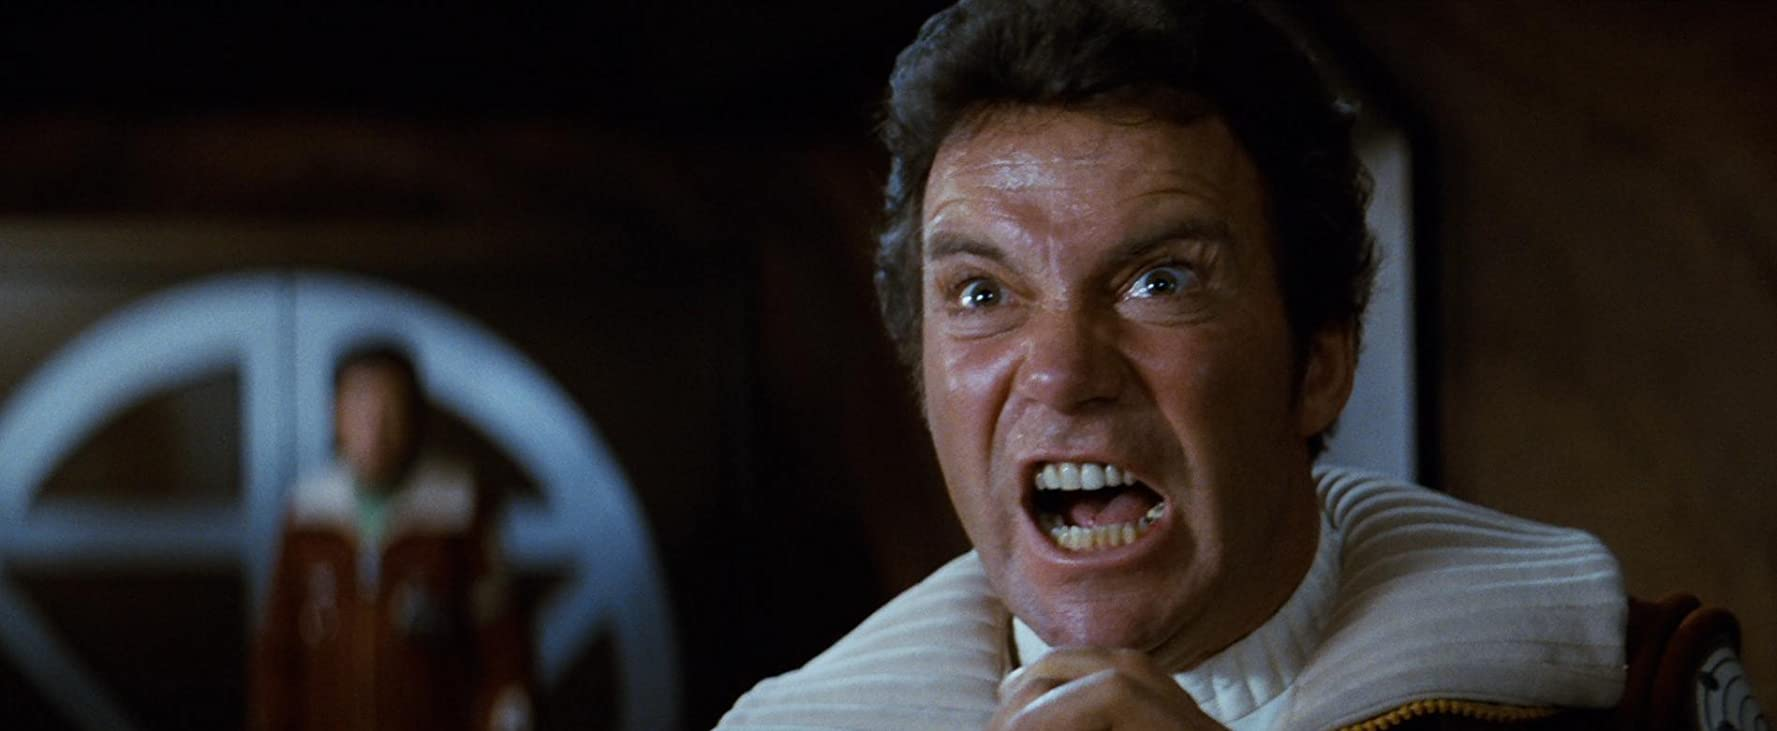 William Shatner in Star Trek II The Wrath of Khan 1982